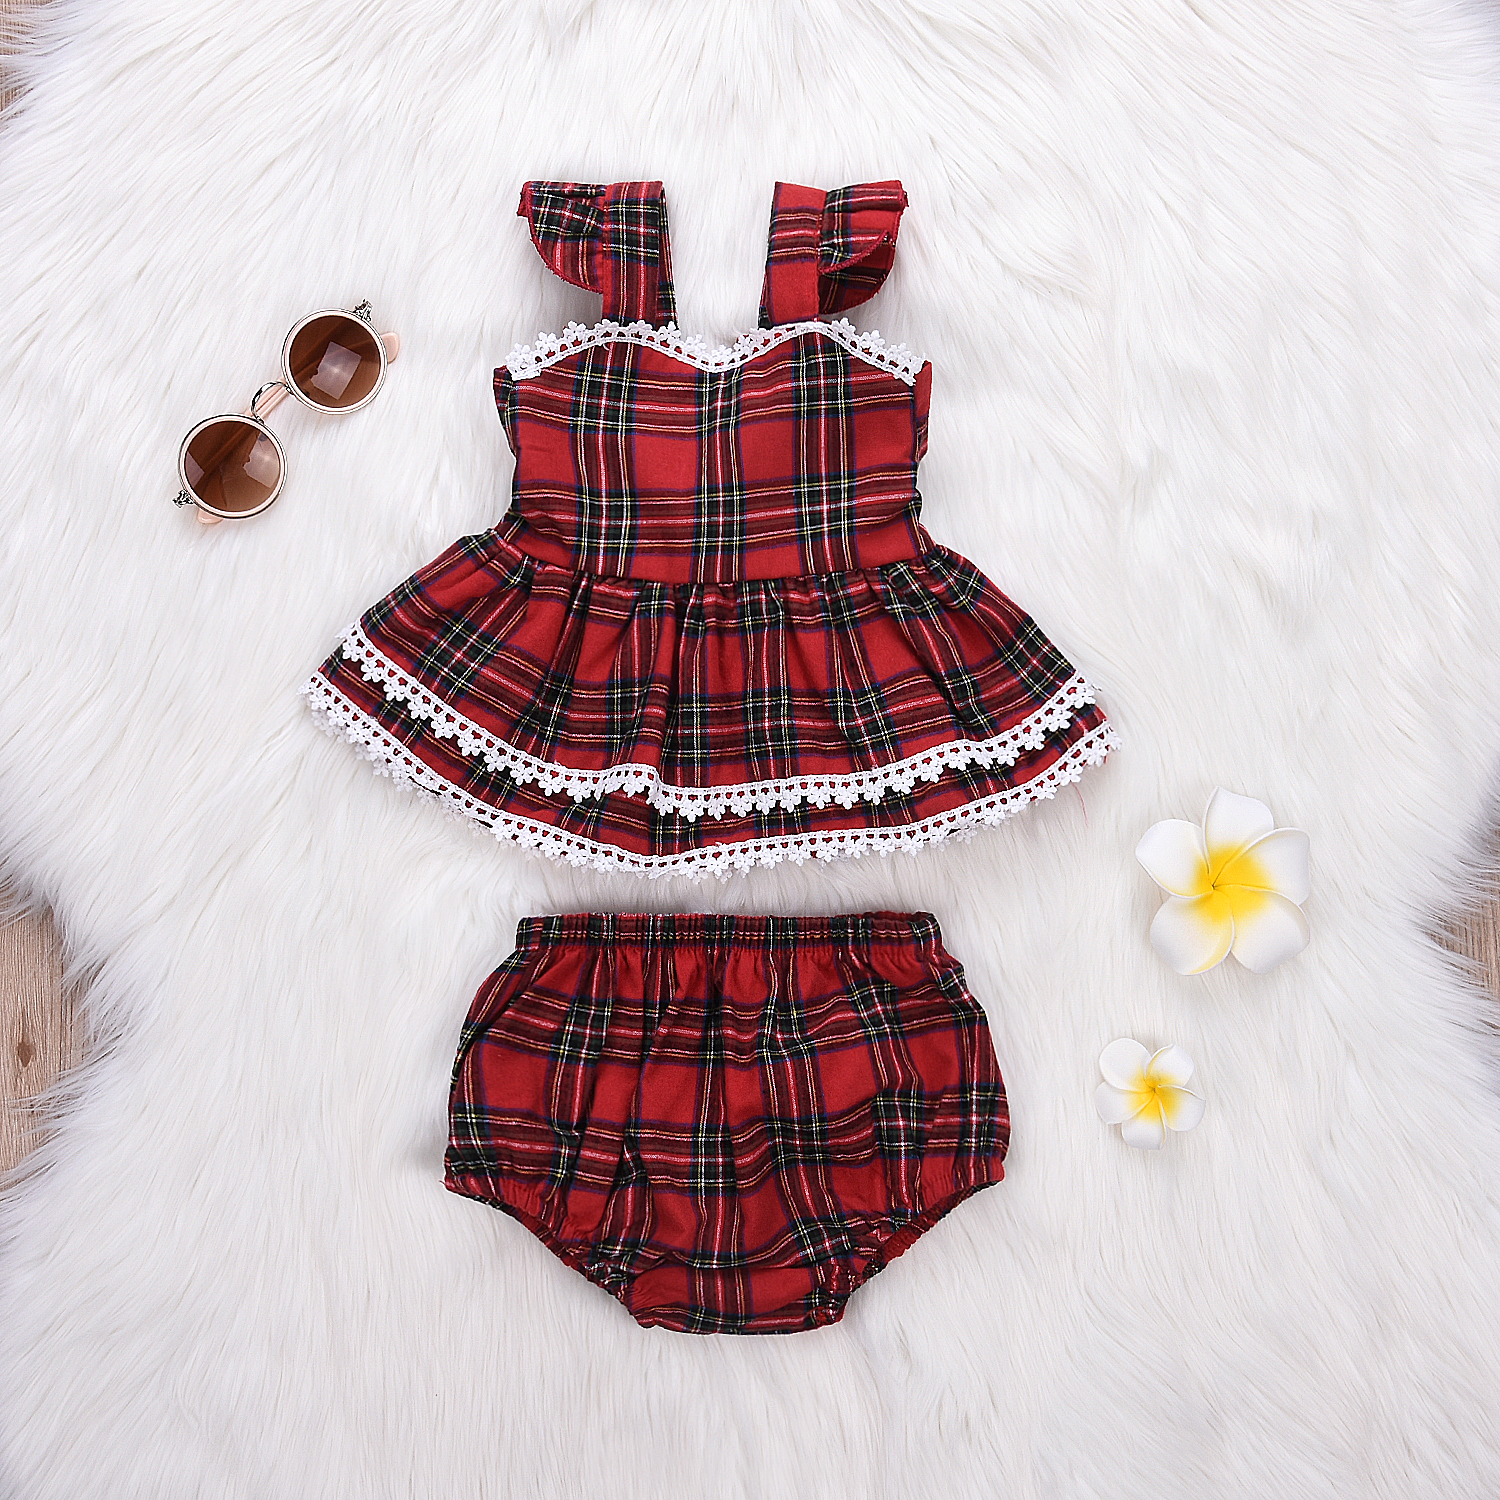 Купить со скидкой 2-piece Trendy Christmas Plaid Lace-trimmed Backless Dress and Shorts Set